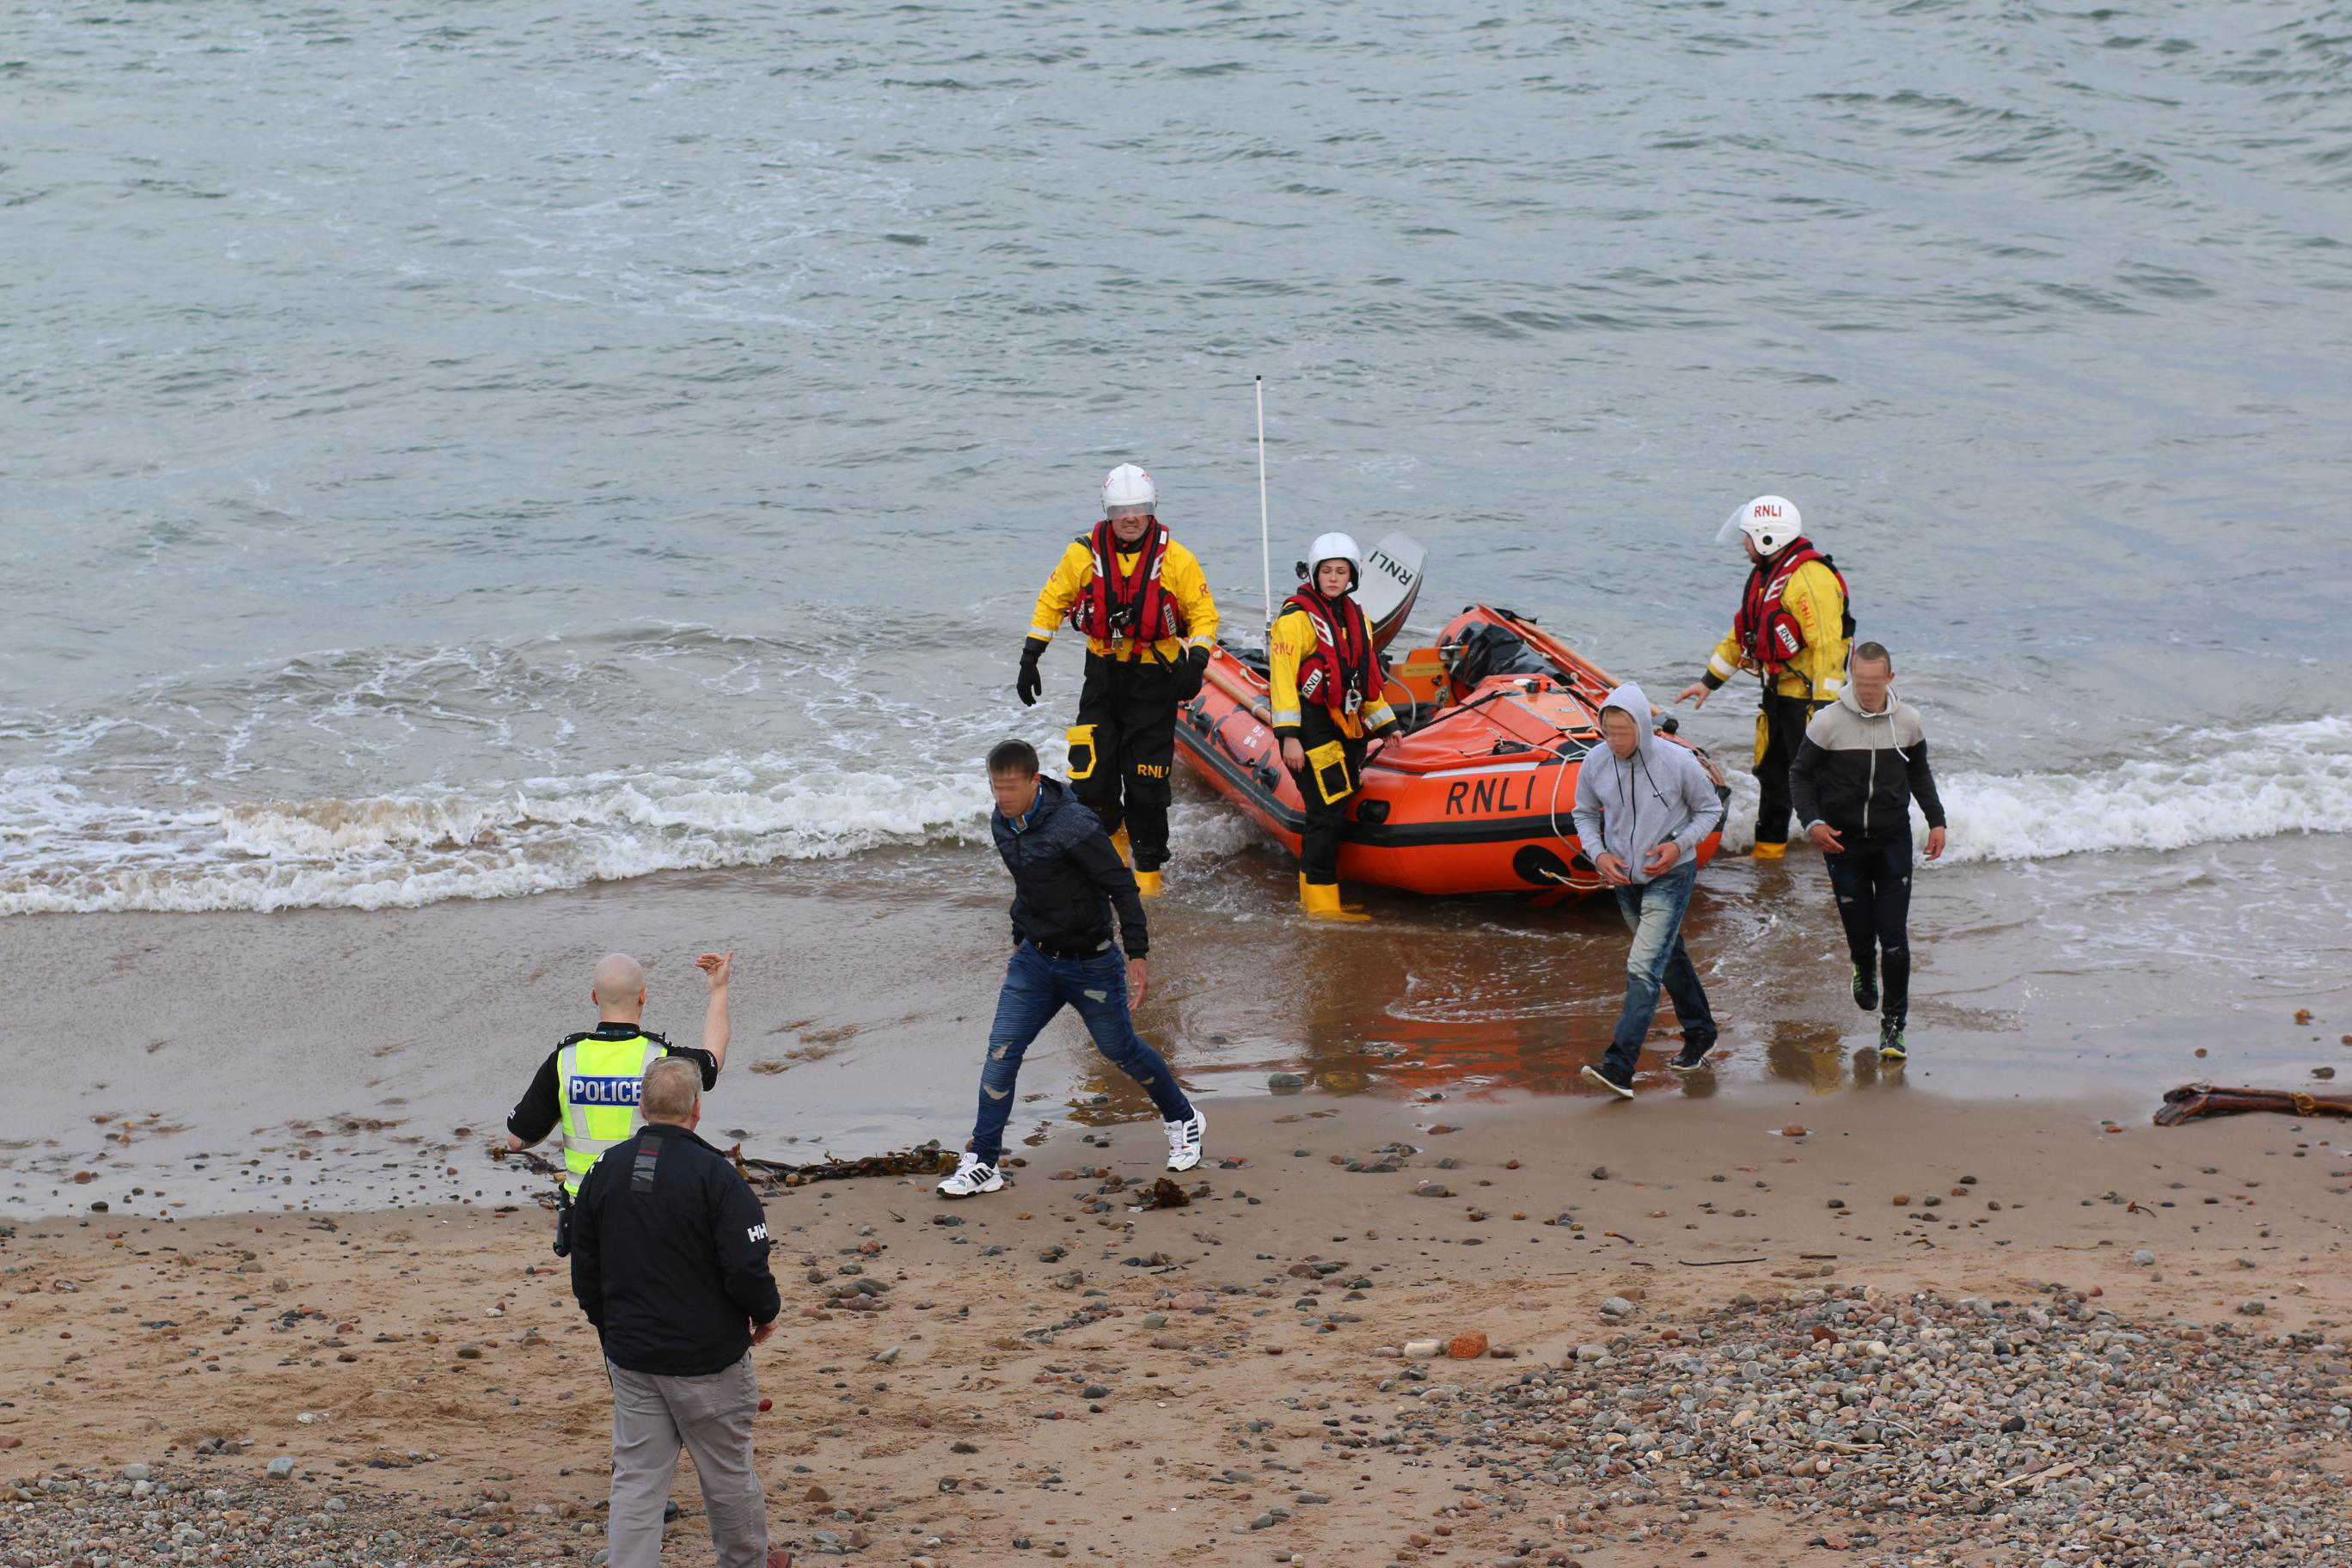 The three men were brought ashore to the beach where they were met by police.